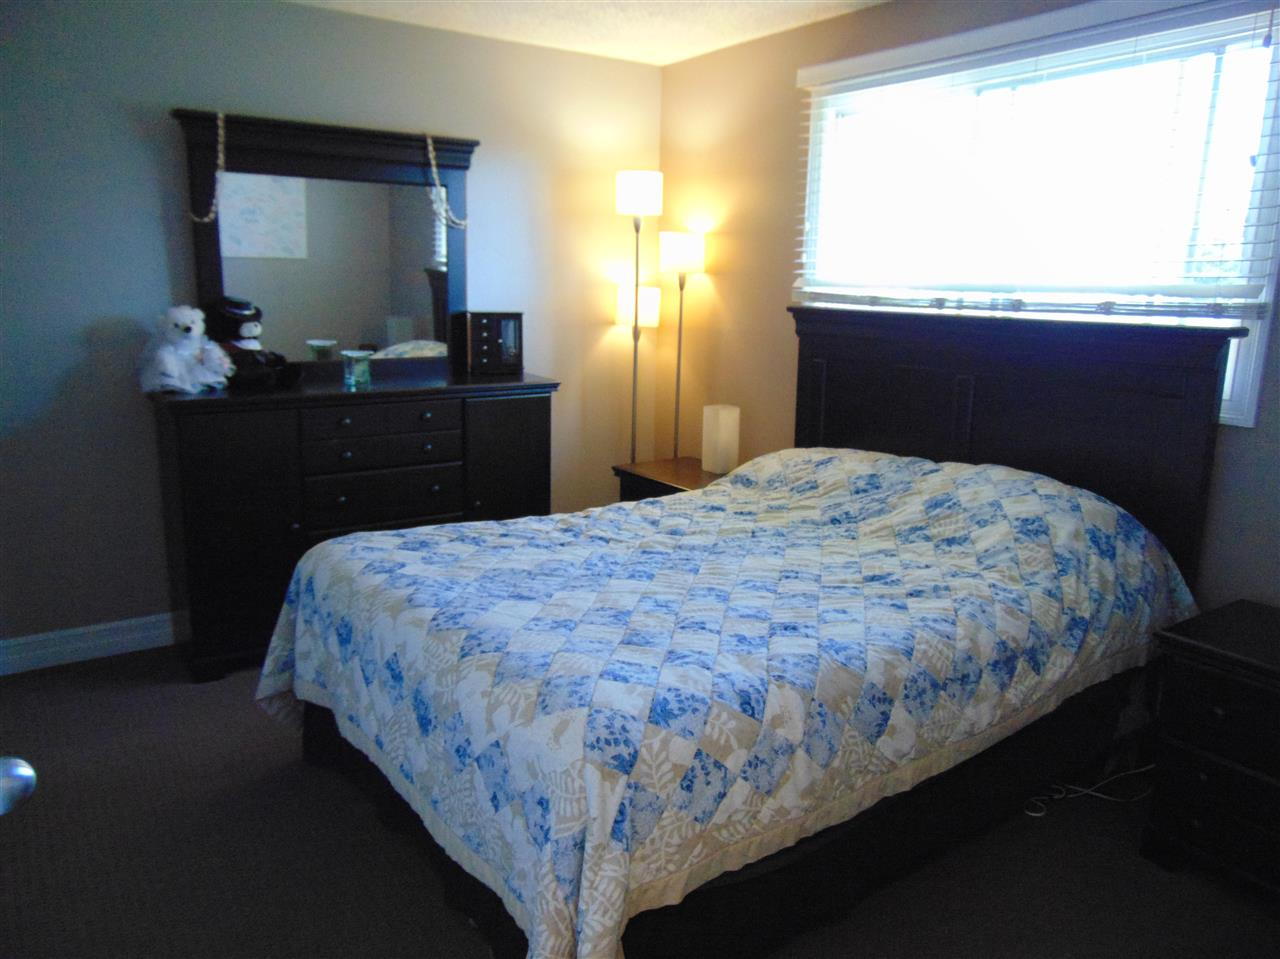 Good size master bedroom with 2 piece ensuite and huge closet area